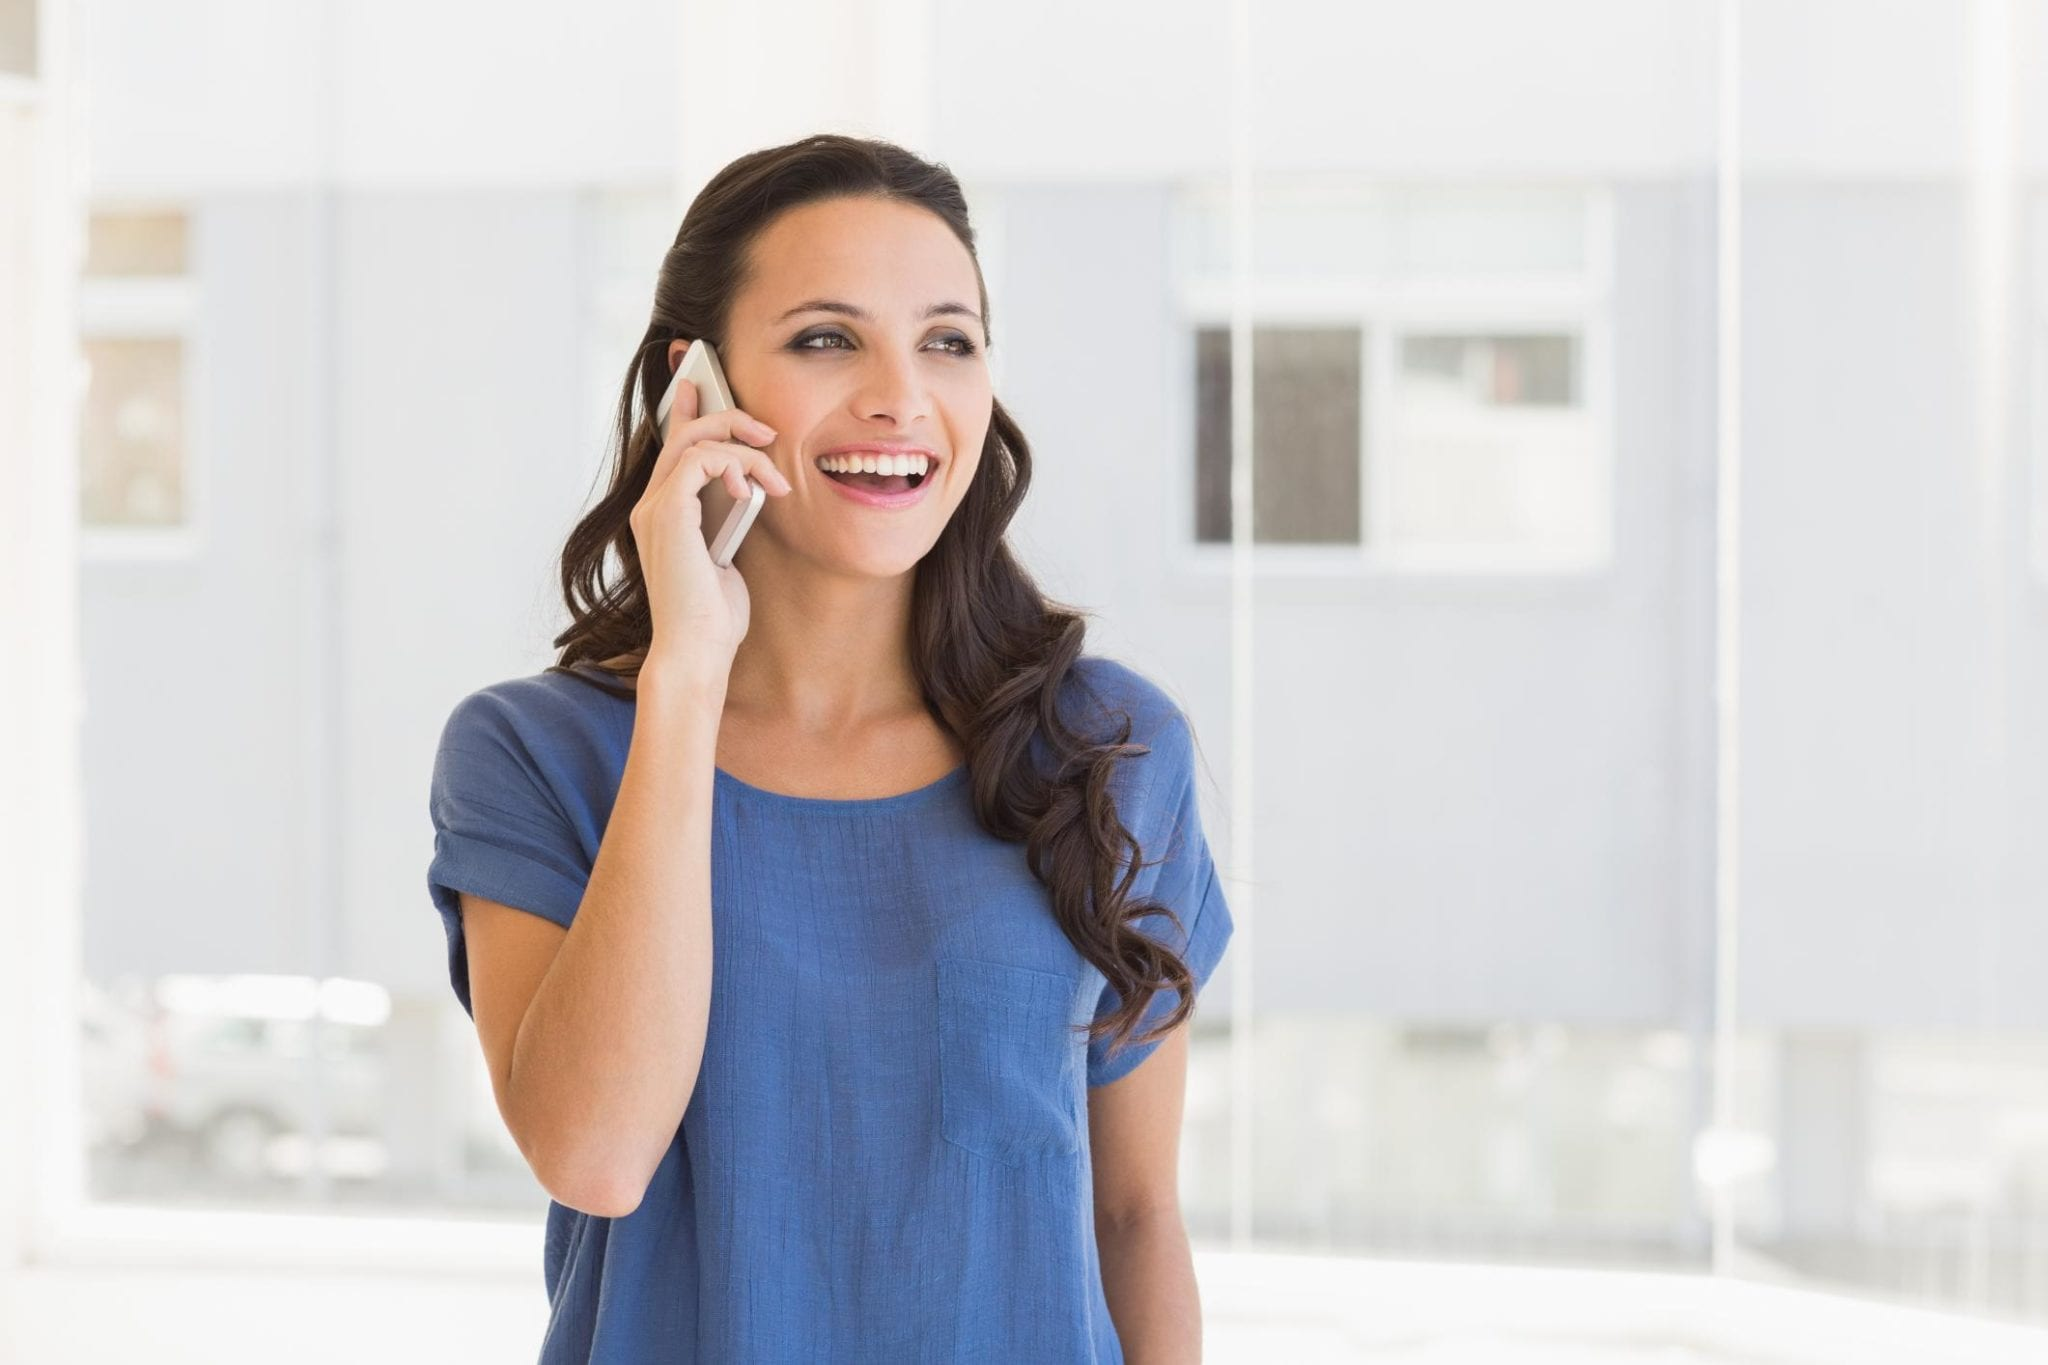 This is a picture of a woman having a phone call.